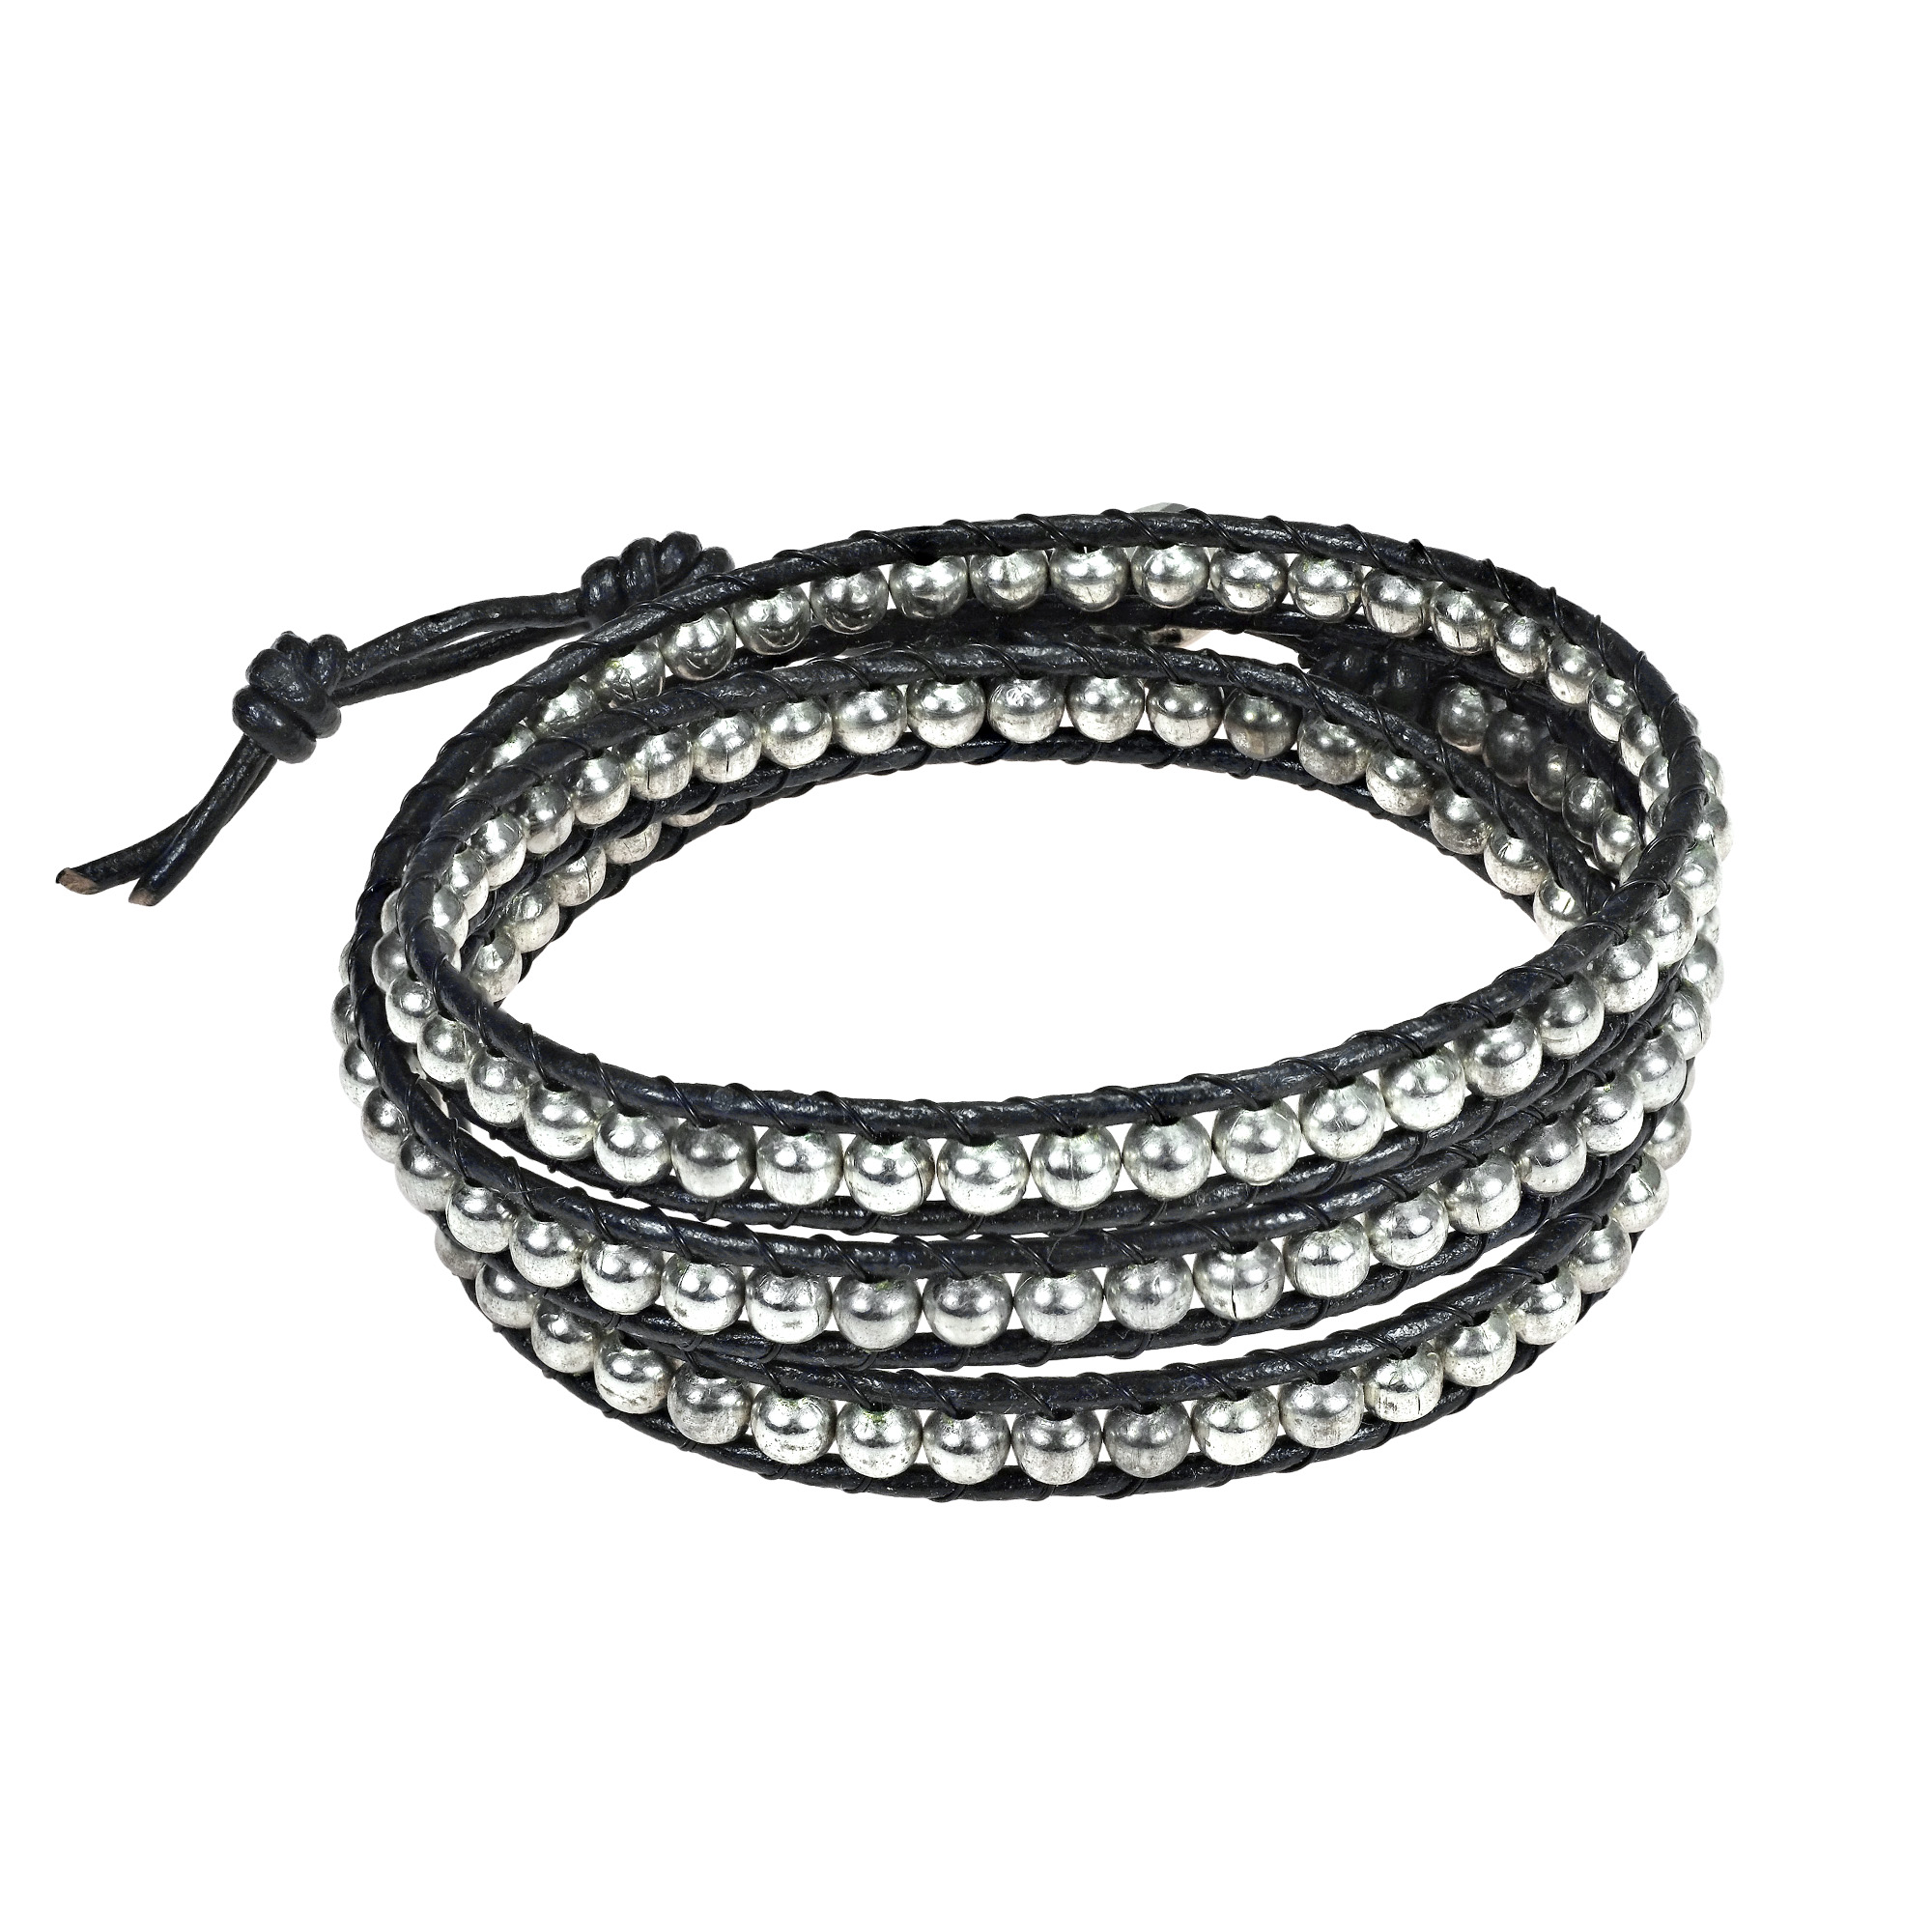 Sublime Metallic Round Fashion Silver Beads Triple Black Leather Wrap Bracelet